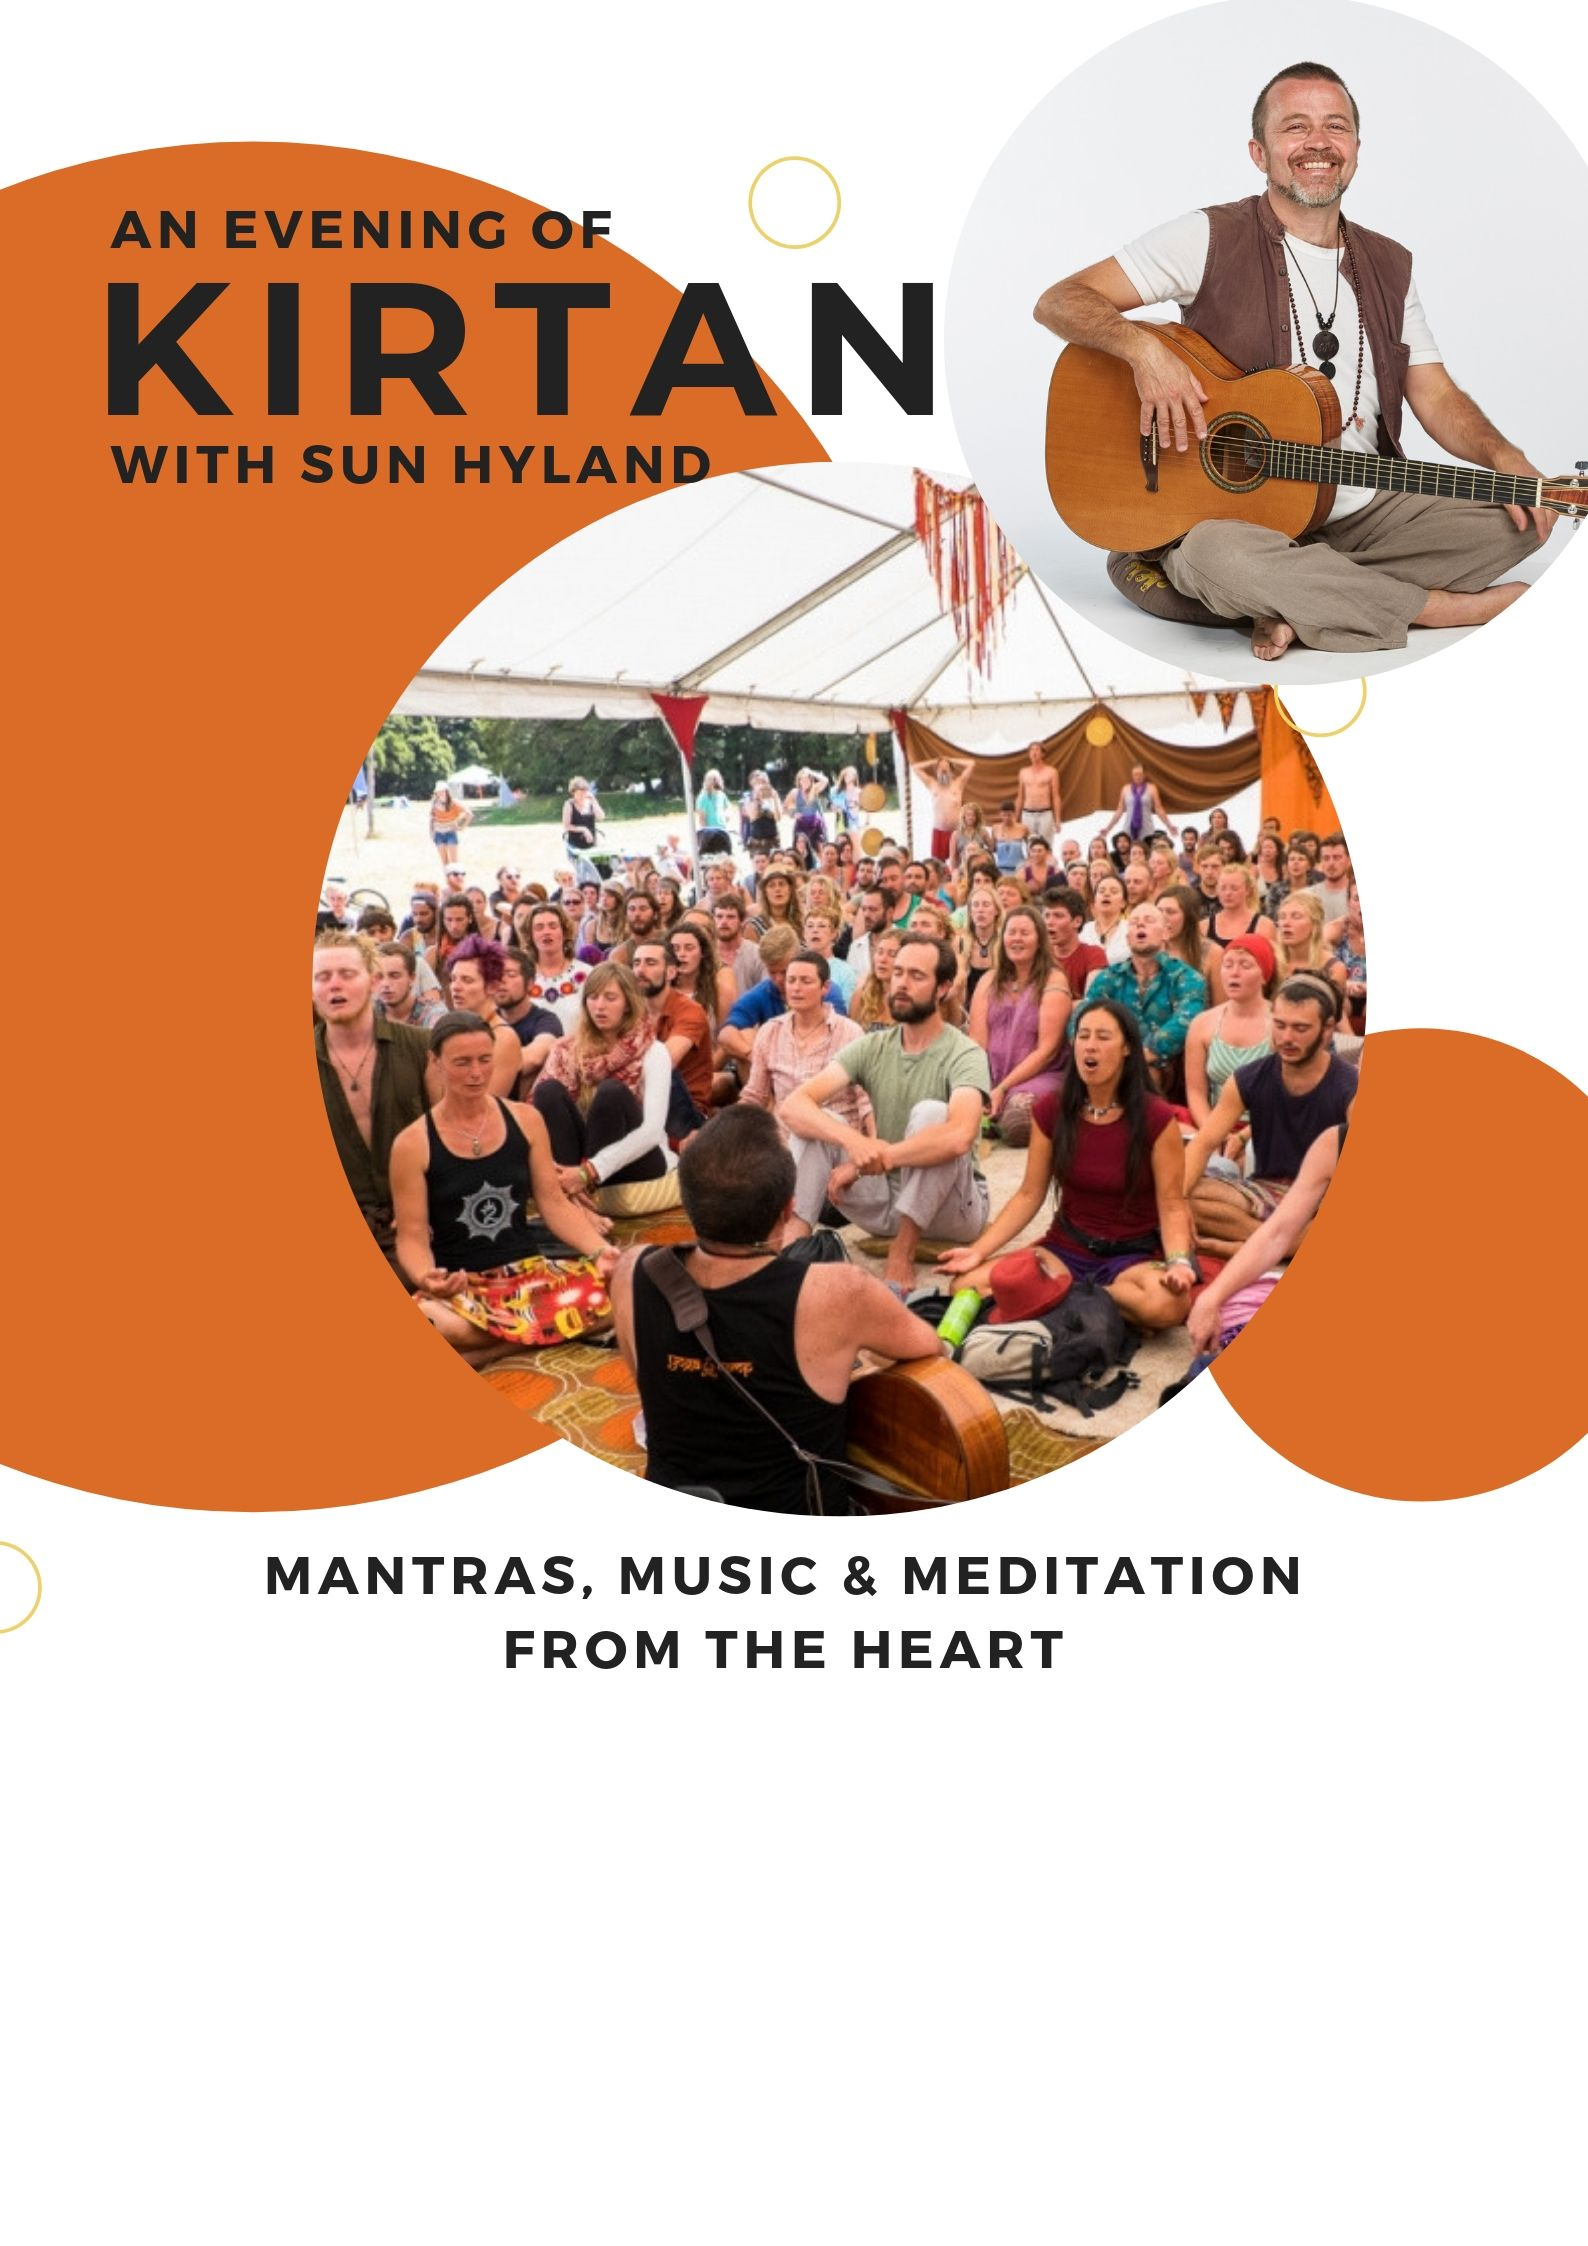 Kirtan with Sun hylend event kundalini house fitzroy north